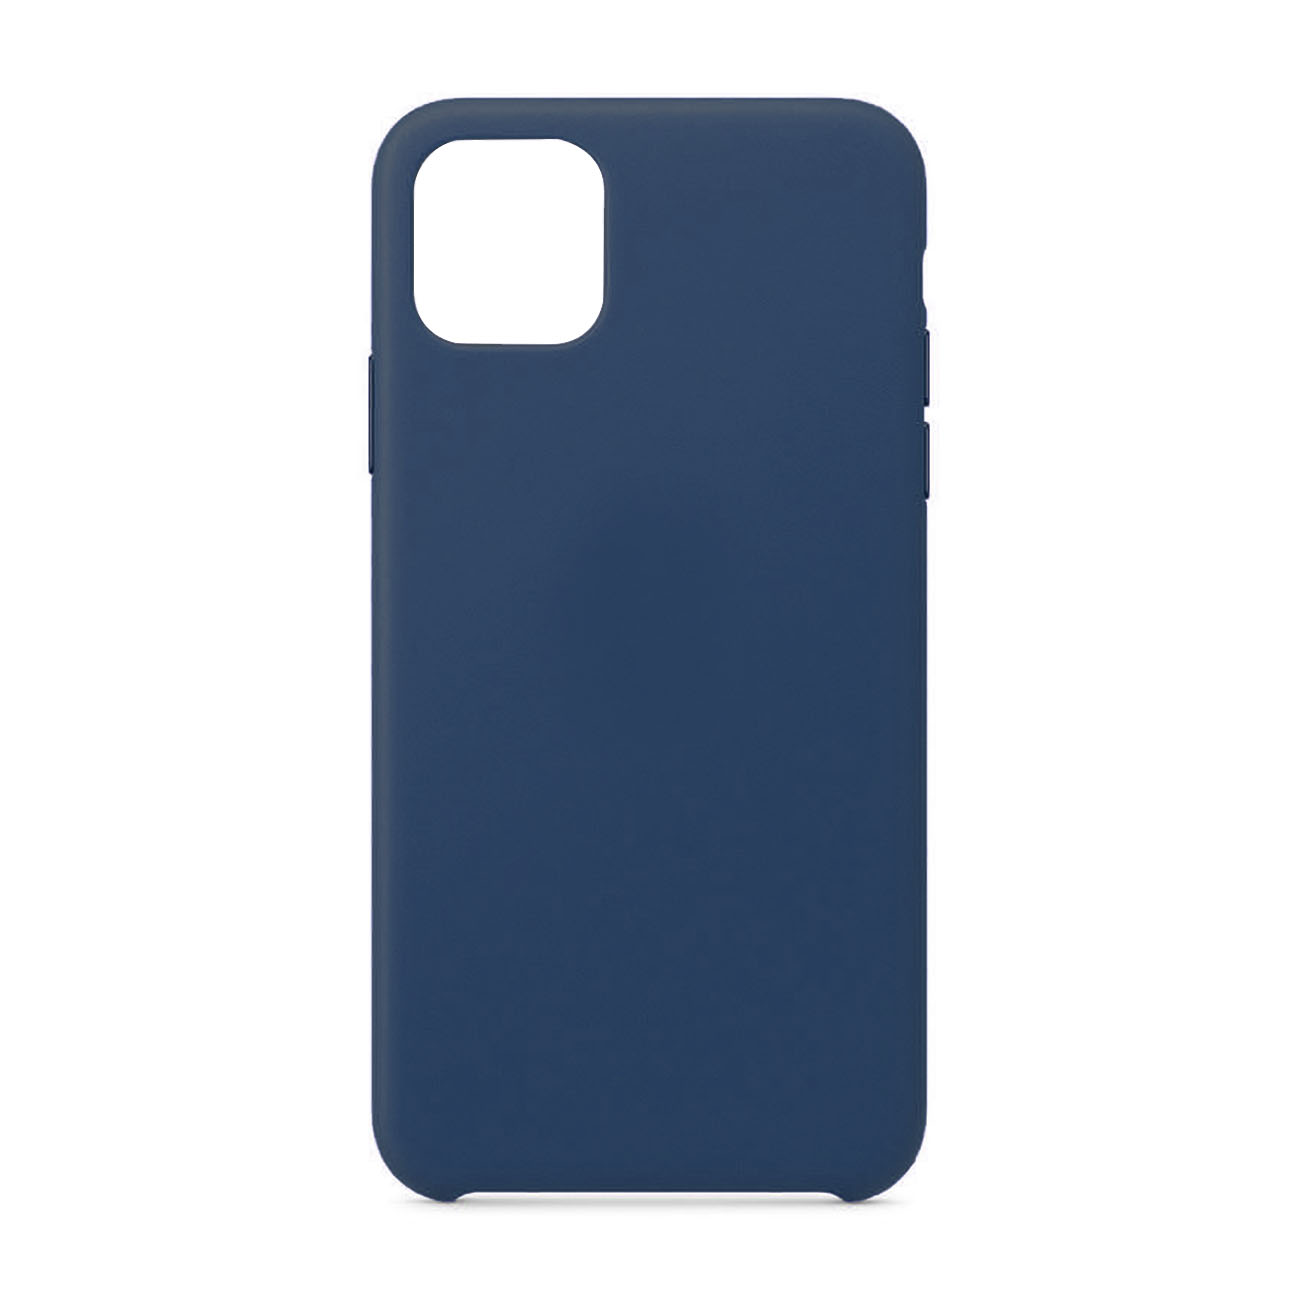 Apple iPhone 11 Pro Max Gummy Cases In Navy